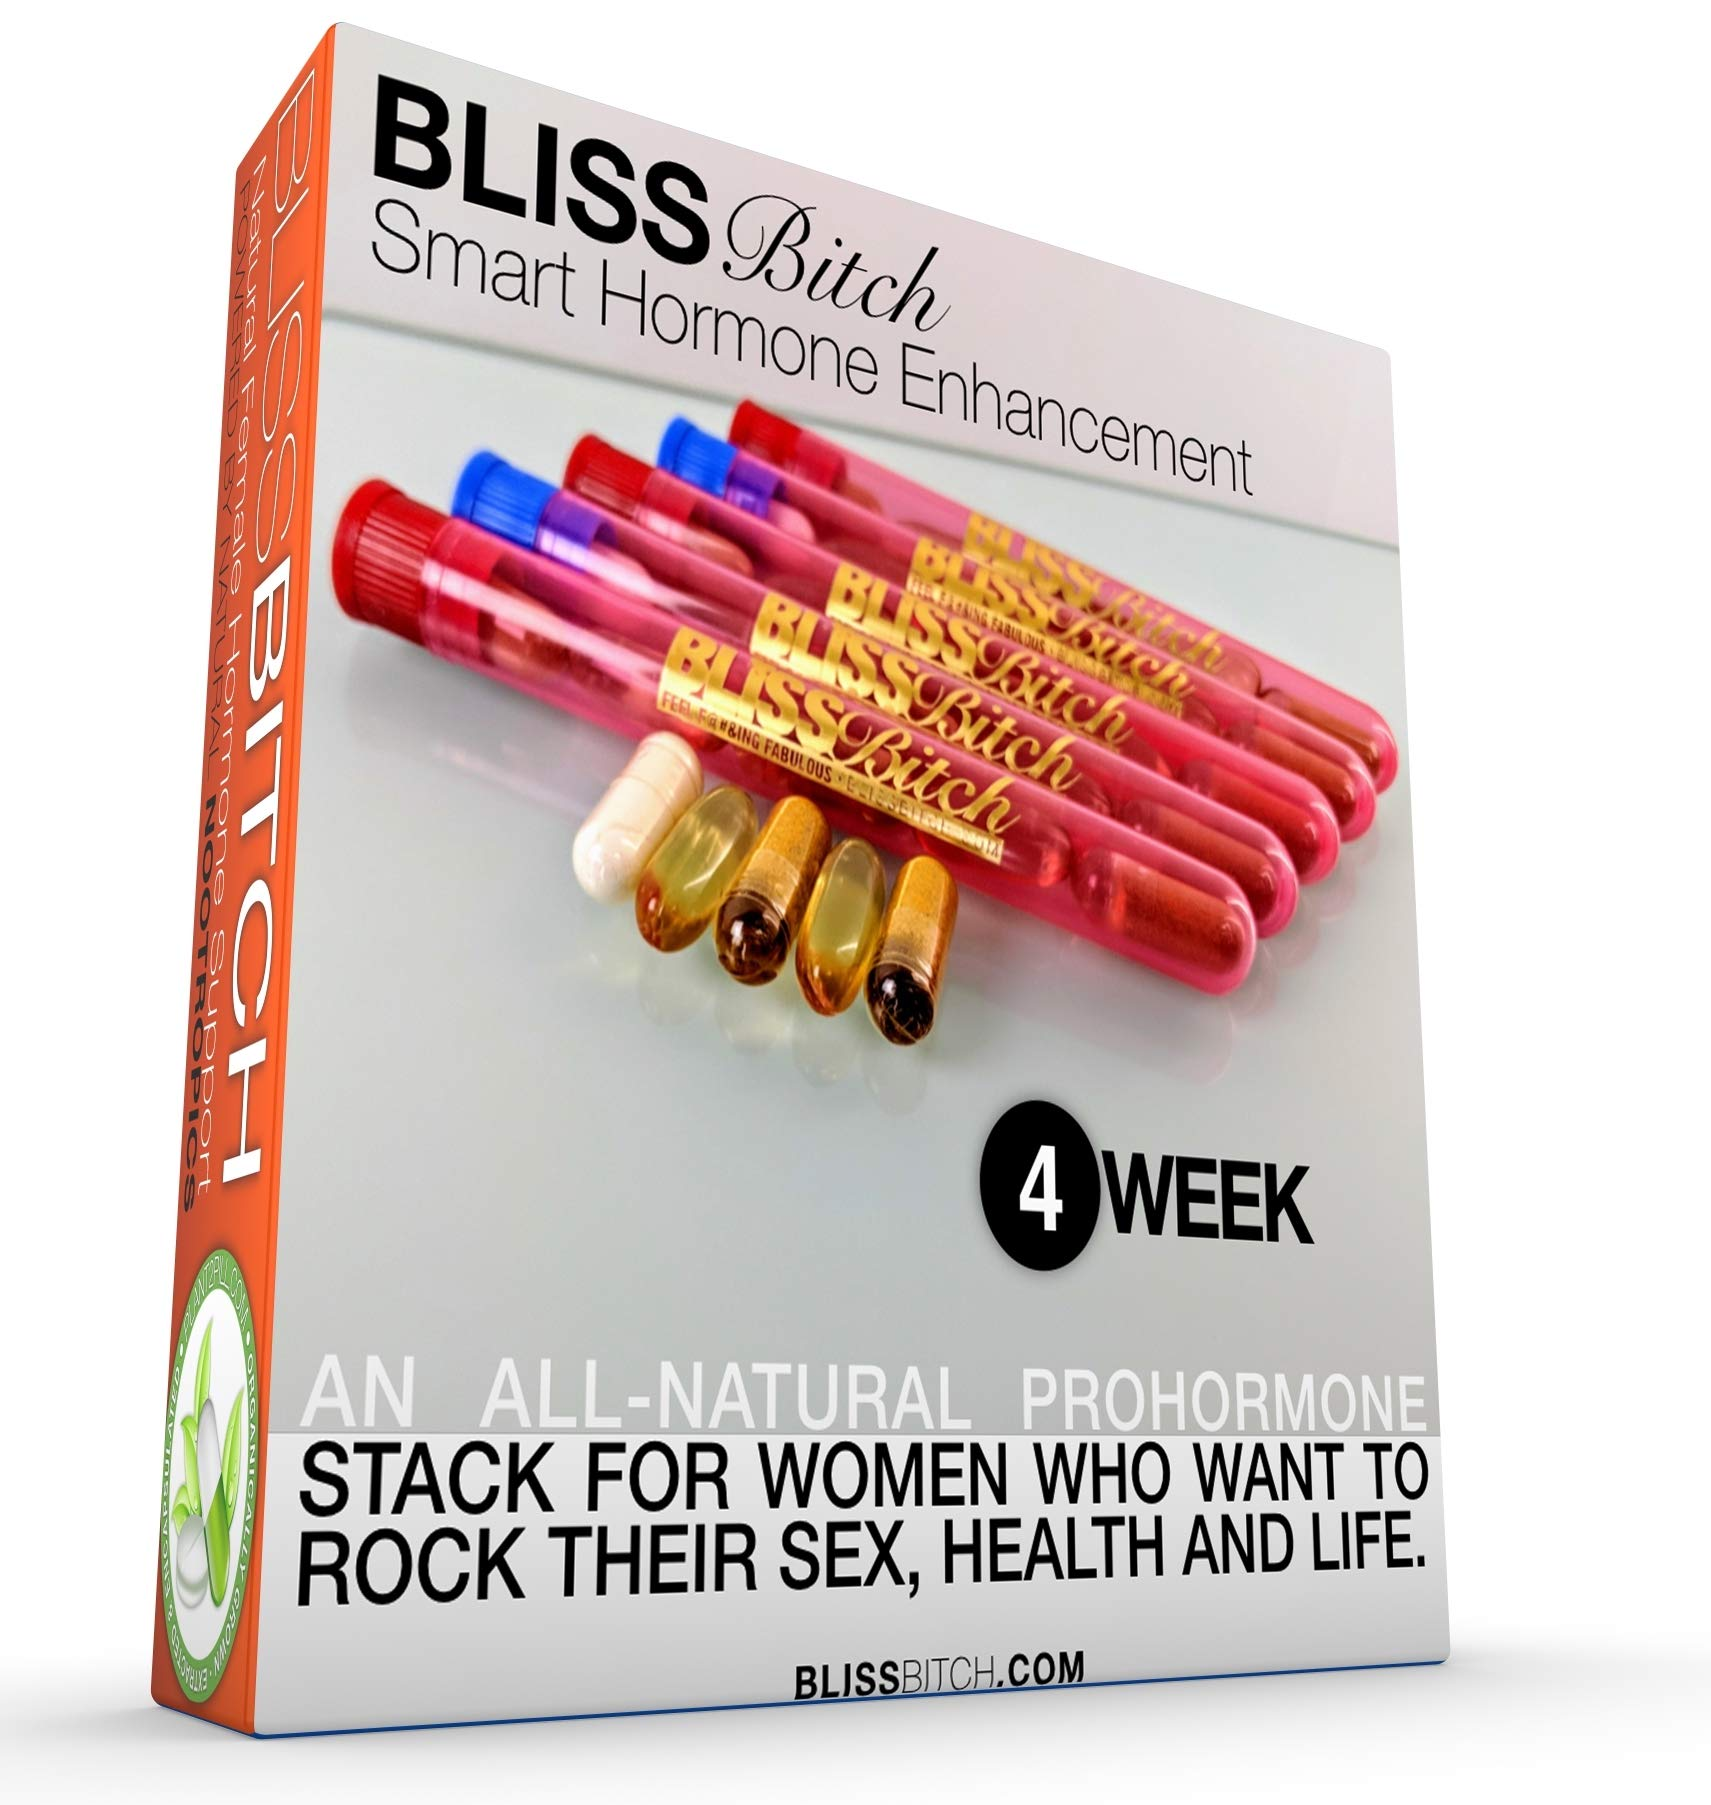 BlissBitch Restoramones - Female Pre-hormones - Fast, Natural Solution For Hot Flashes, Wrinkles, Mood Swings, and Other Issues with Menopause and Menses - Natural Alternative to BioIdentical Hormones